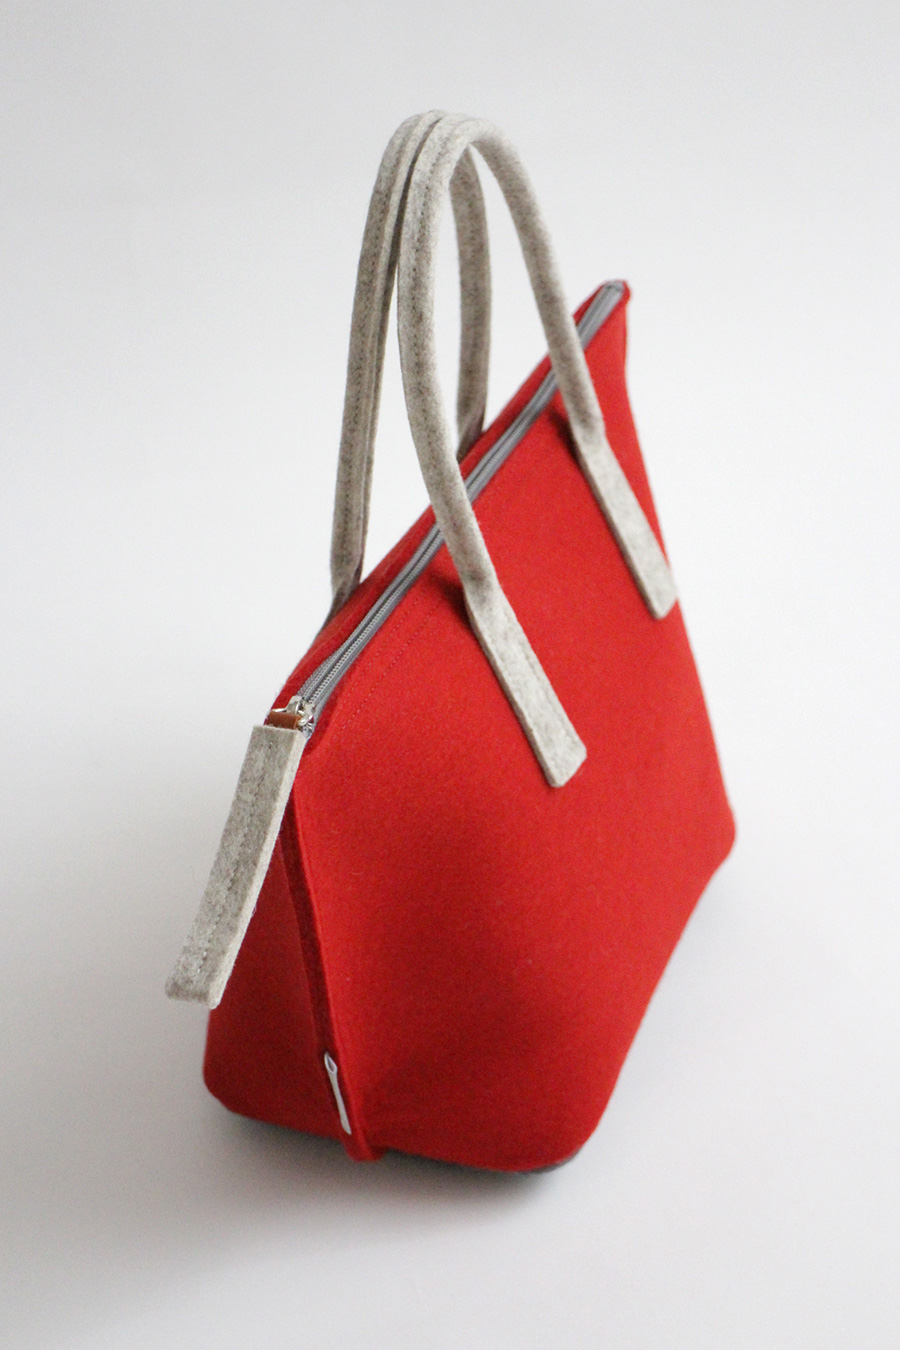 LUNCH BAG WITH WATER-RESISTANT INNER BAG, red